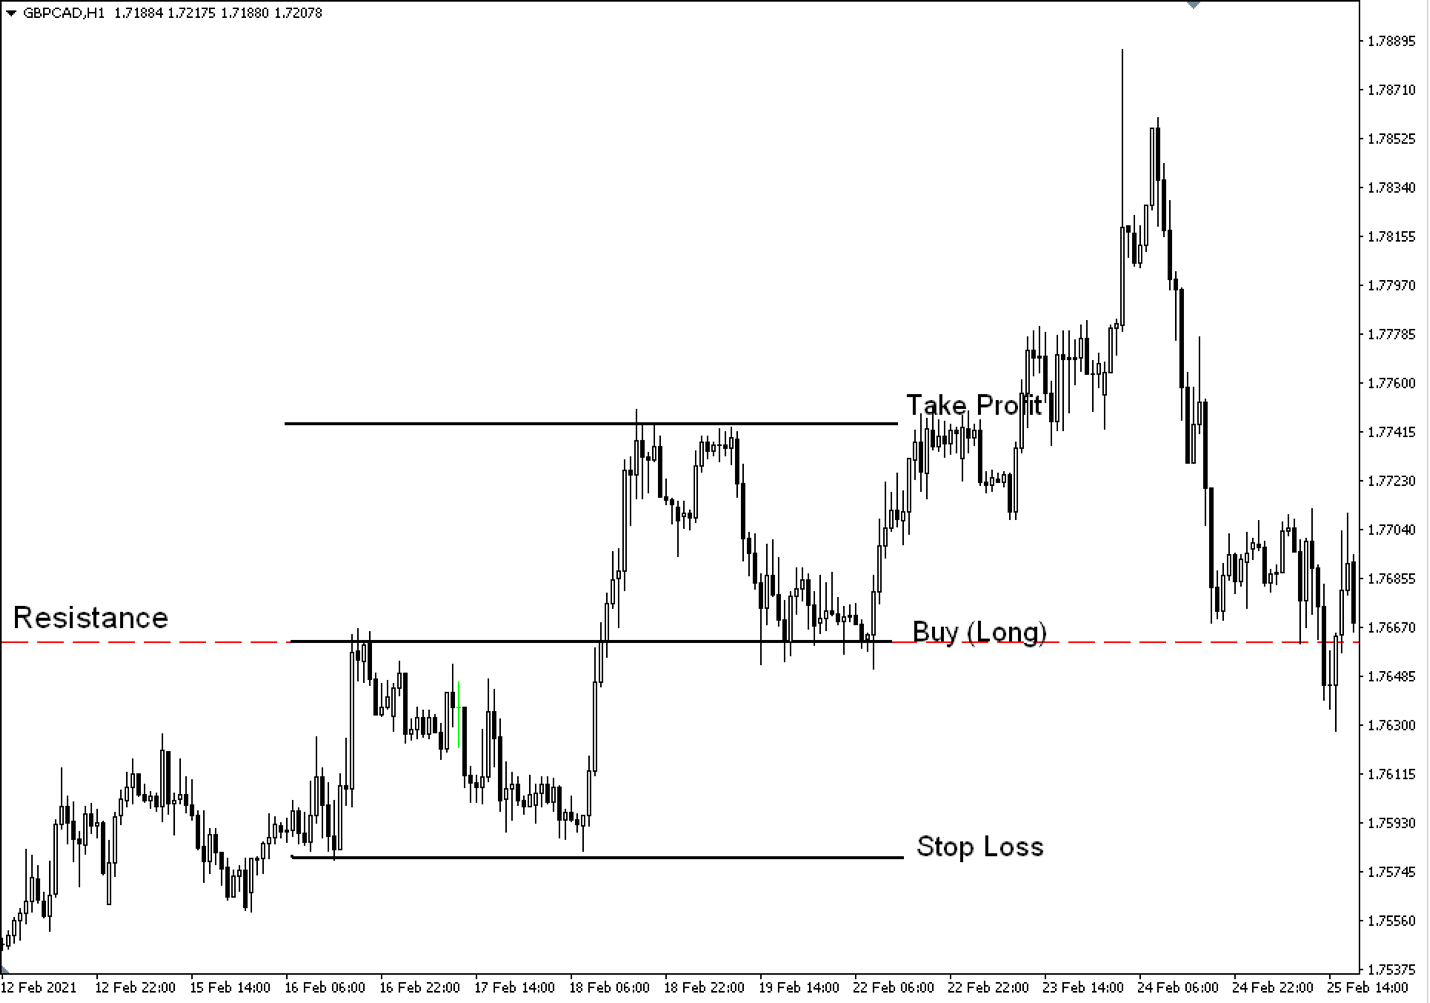 Retest strategy setup for a long trade on a chart